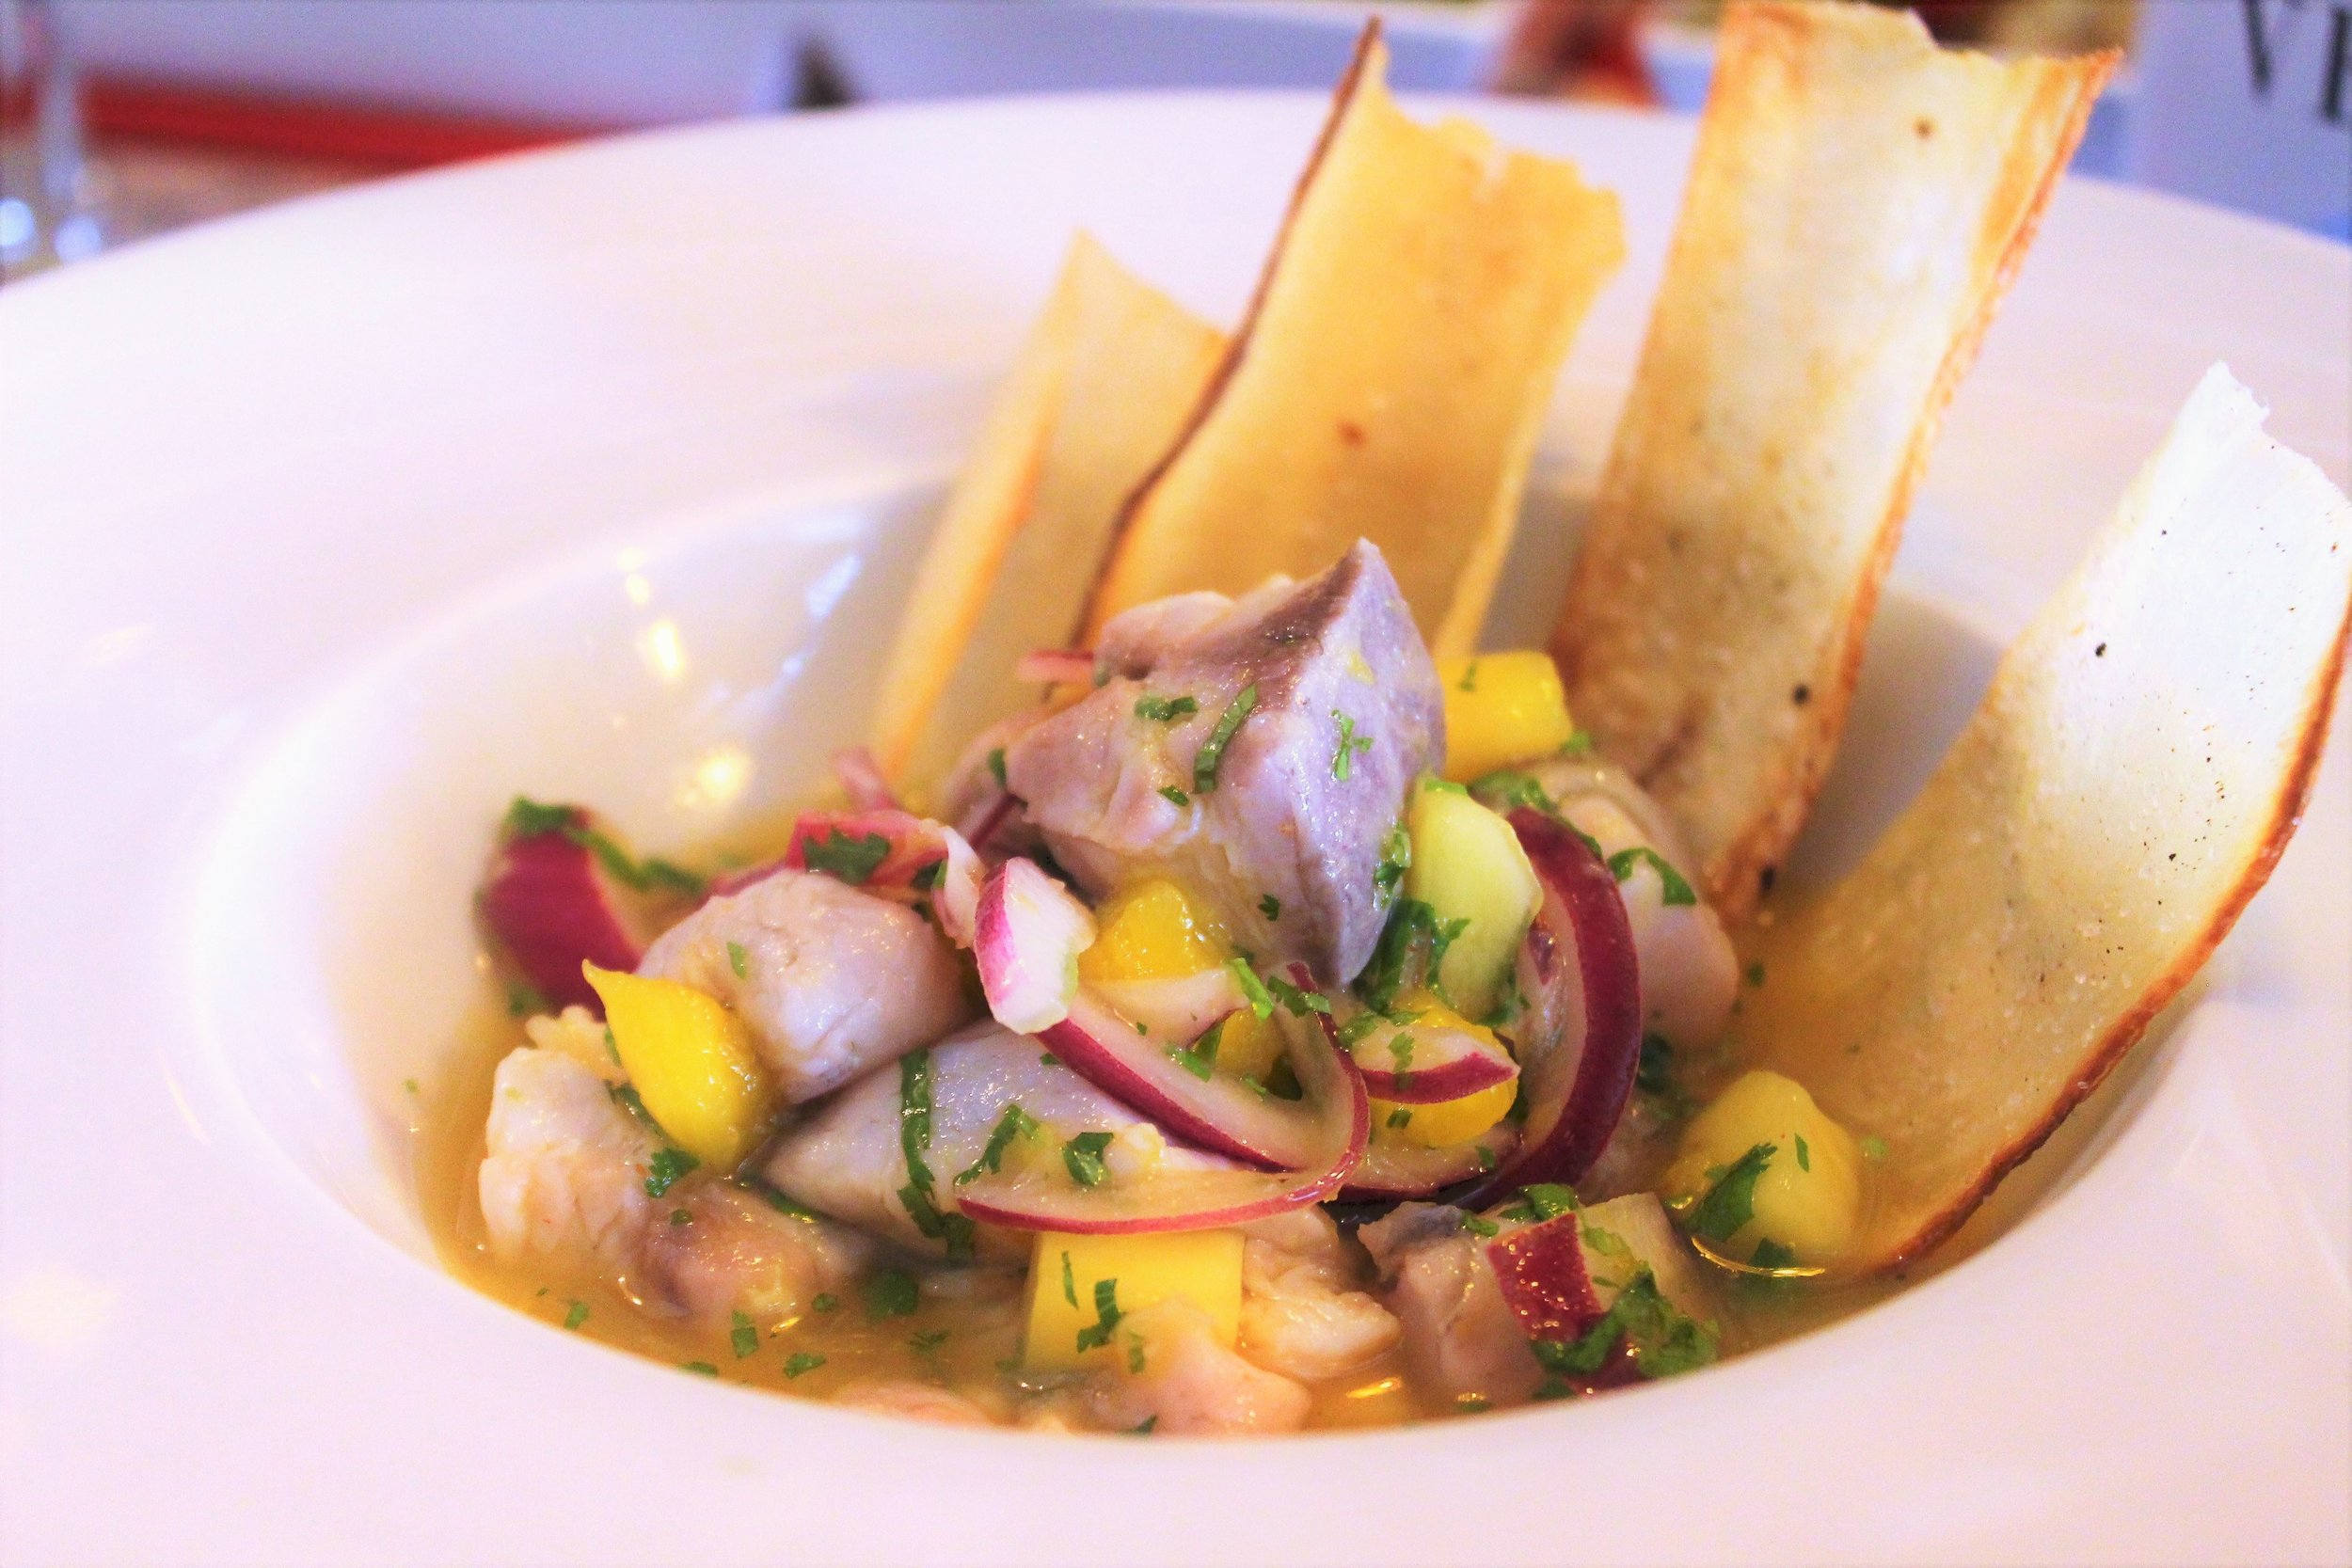 Ceraviche Special Ceviche with Yucca Chips at Cera 23 in Barcelona